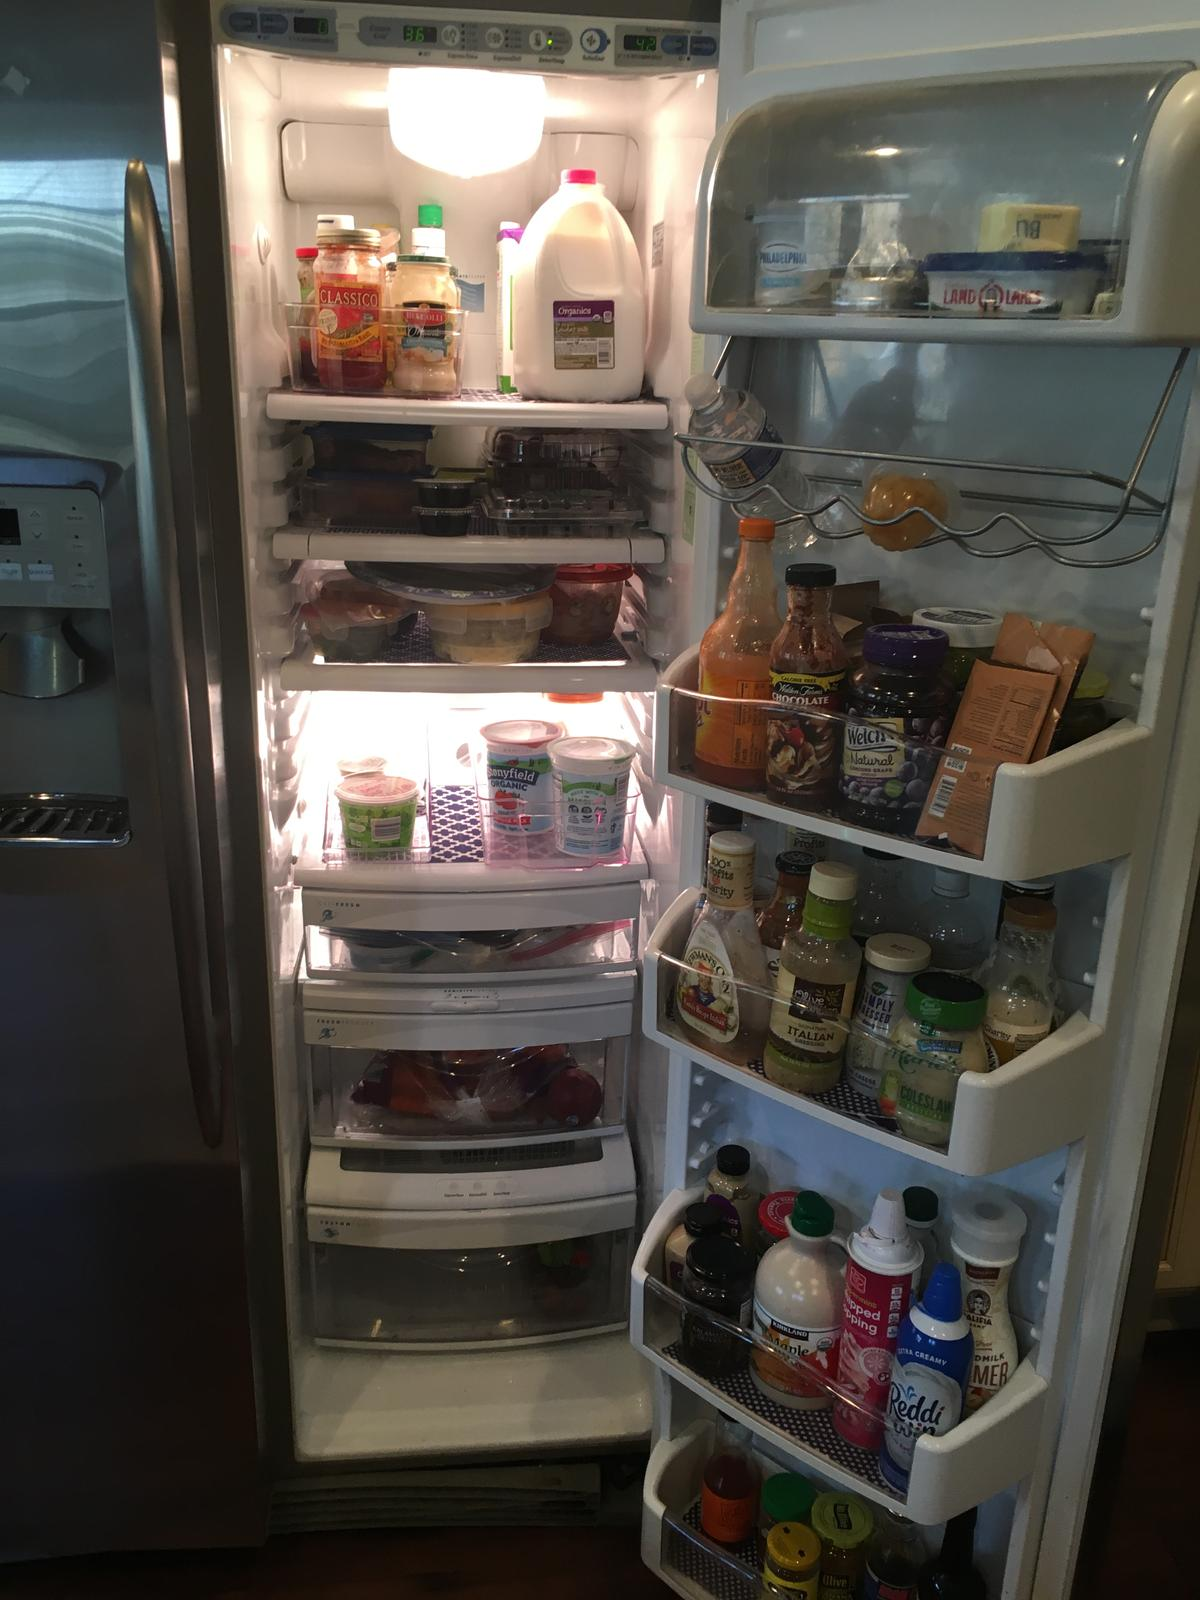 After Refrigerator Clean